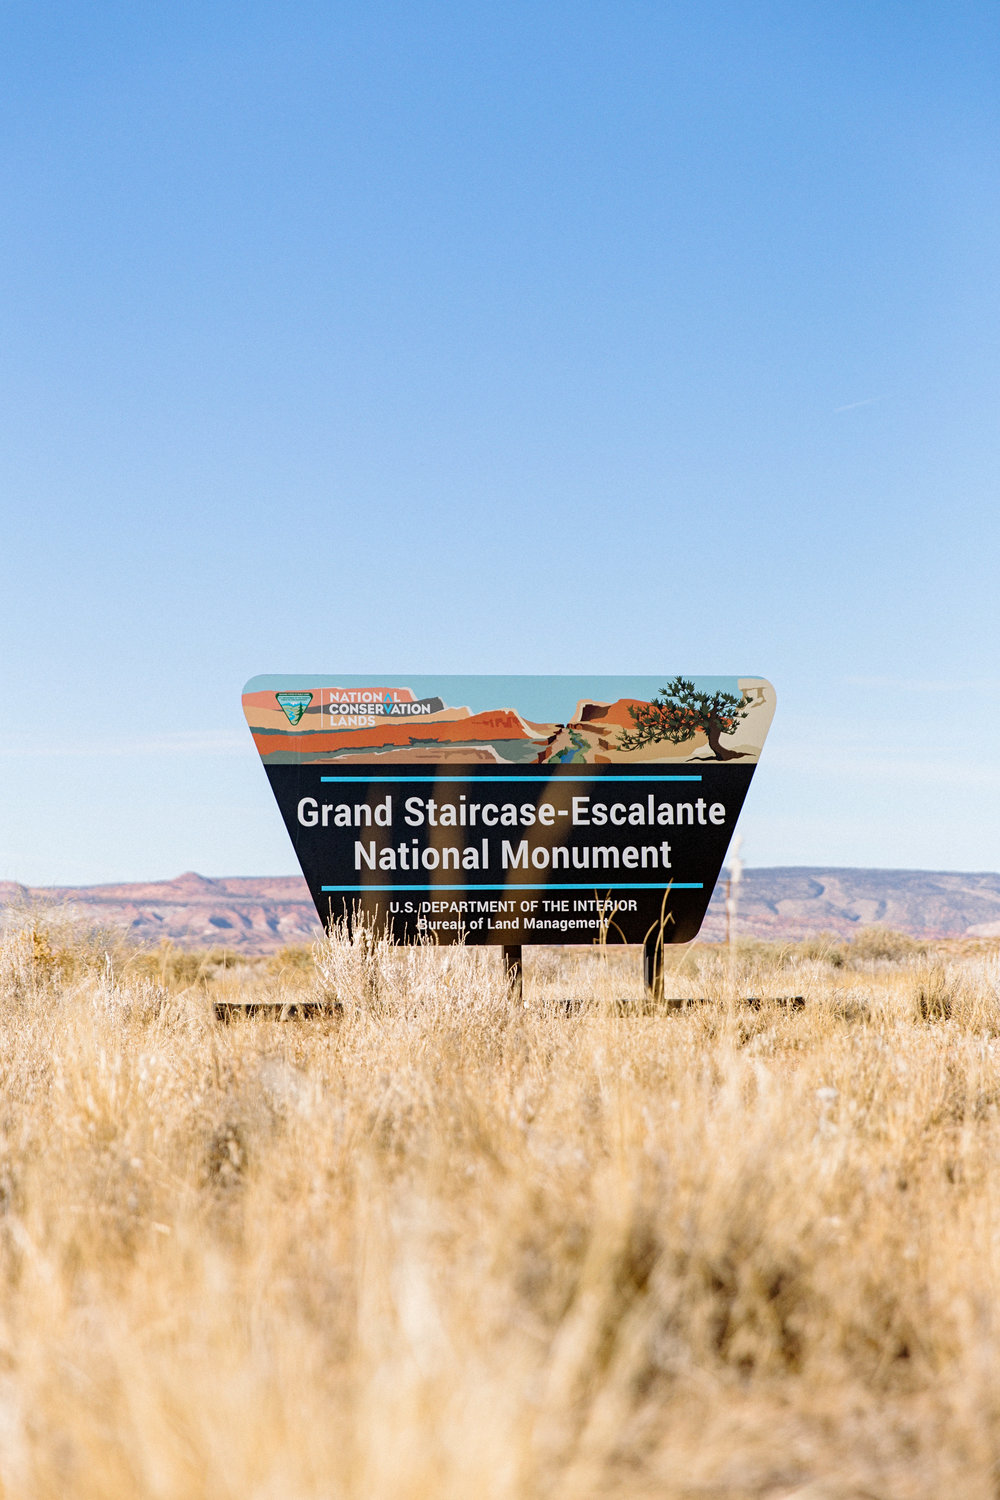 - The last few days of the year were spent exploring the very southern border of Grand Staircase-Escalante National Monument, an area that's been in the news quite a bit recently.